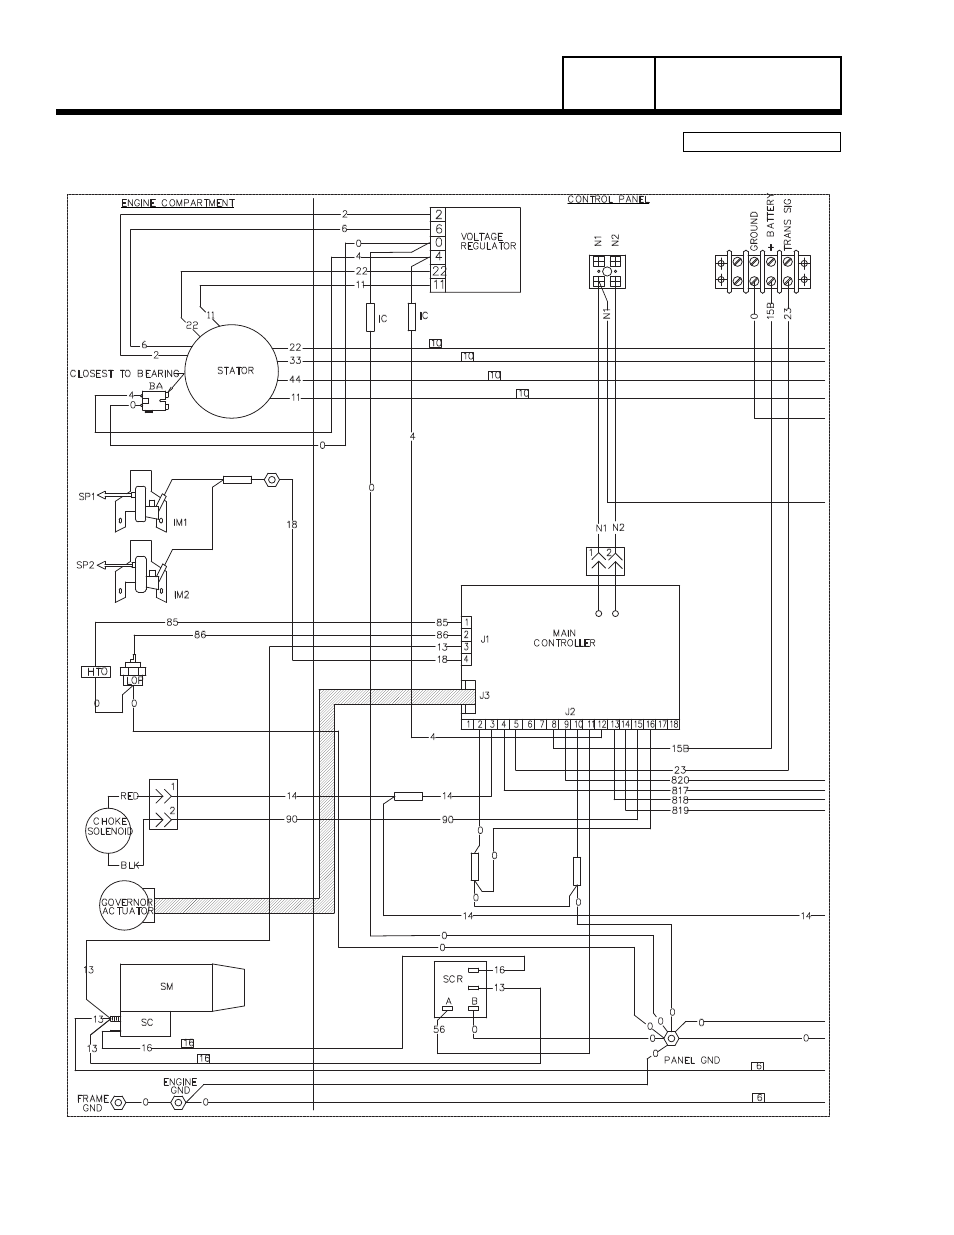 8 Kw Generac Wiring Diagram Free For You Additionally Portable Generator 14 Home Standby Group G Part 7 Power Rh Manualsdir Com Automatic Transfer Switches 400 Amp Switch